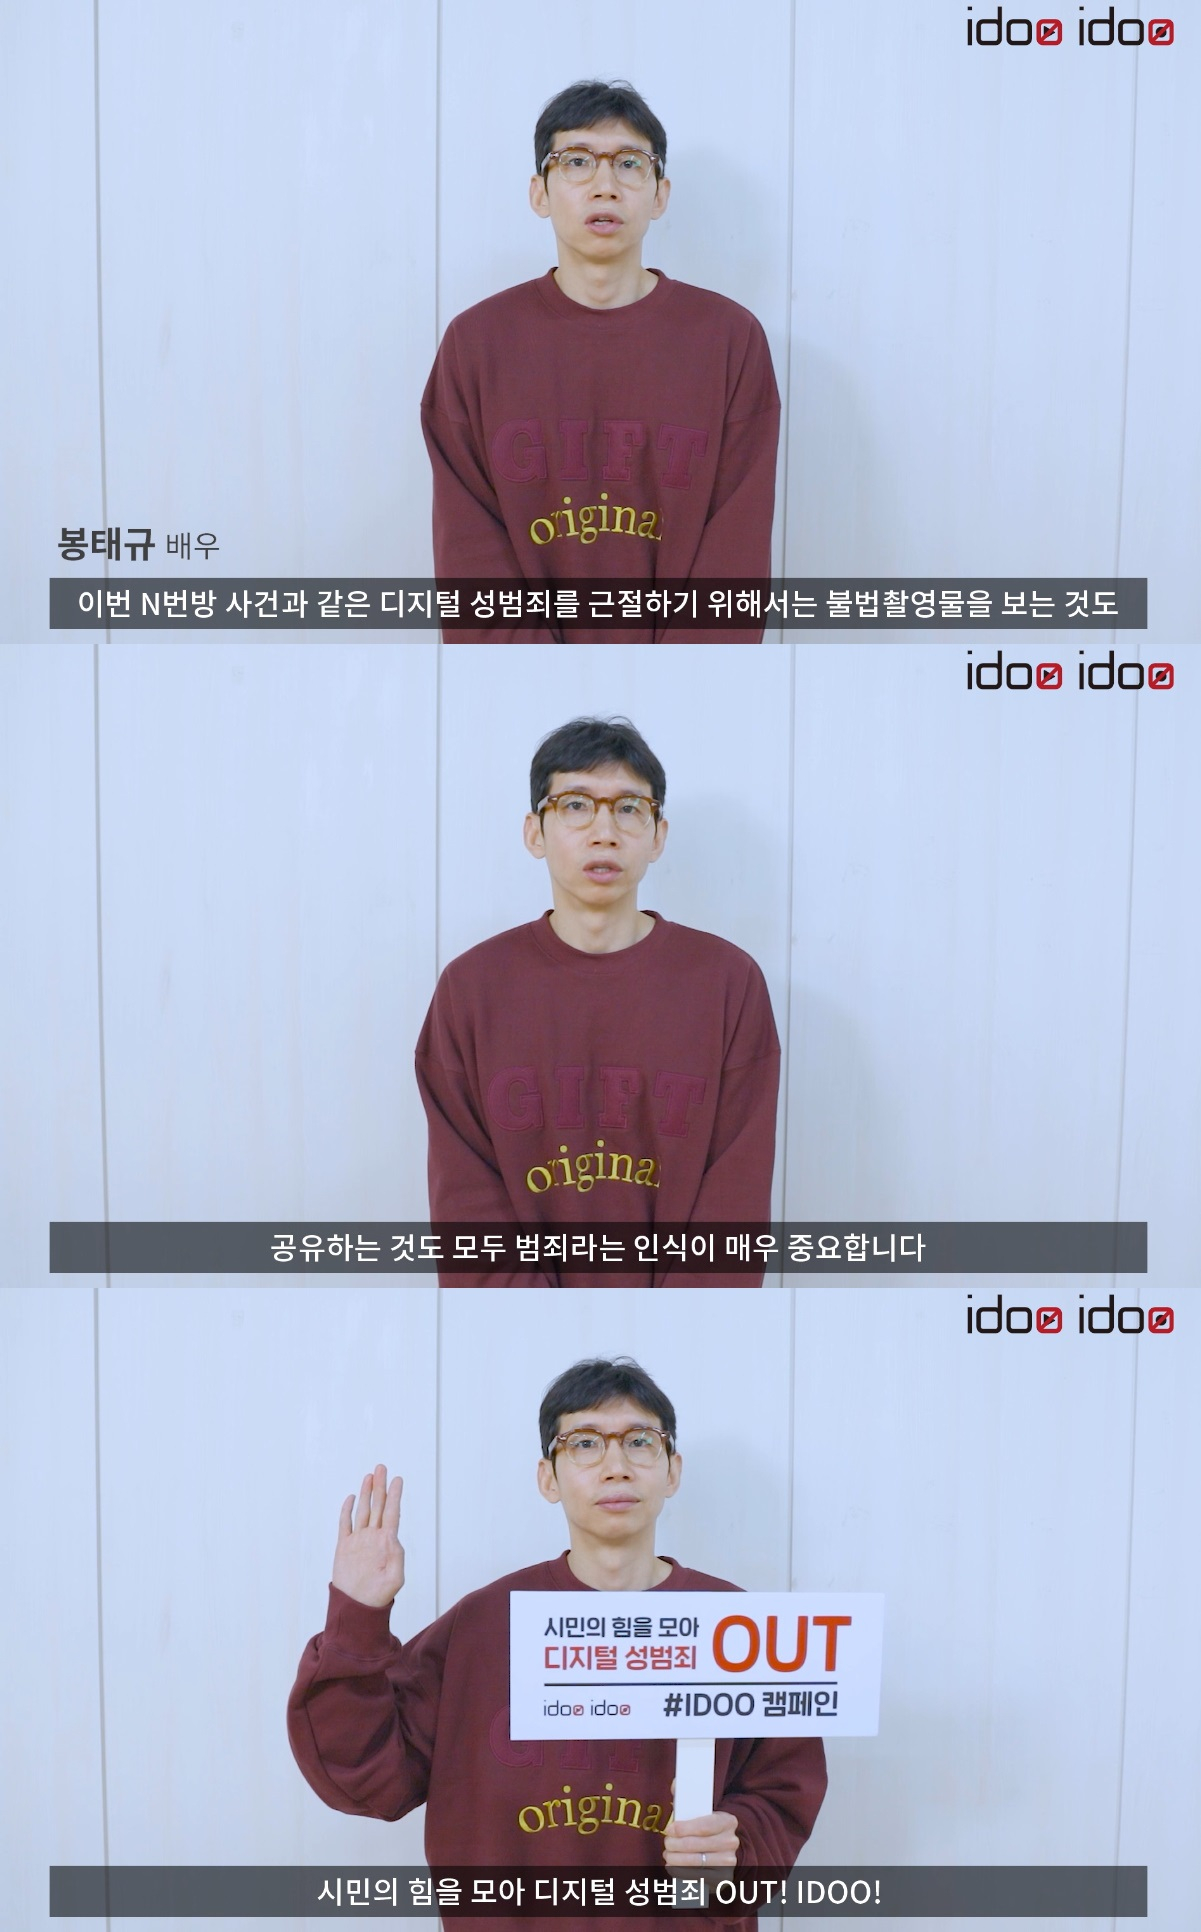 """Actor Bong Tae-gyu took part in the """"IDOO Campaign"""" against digital sex crimes. [IME KOREA]"""